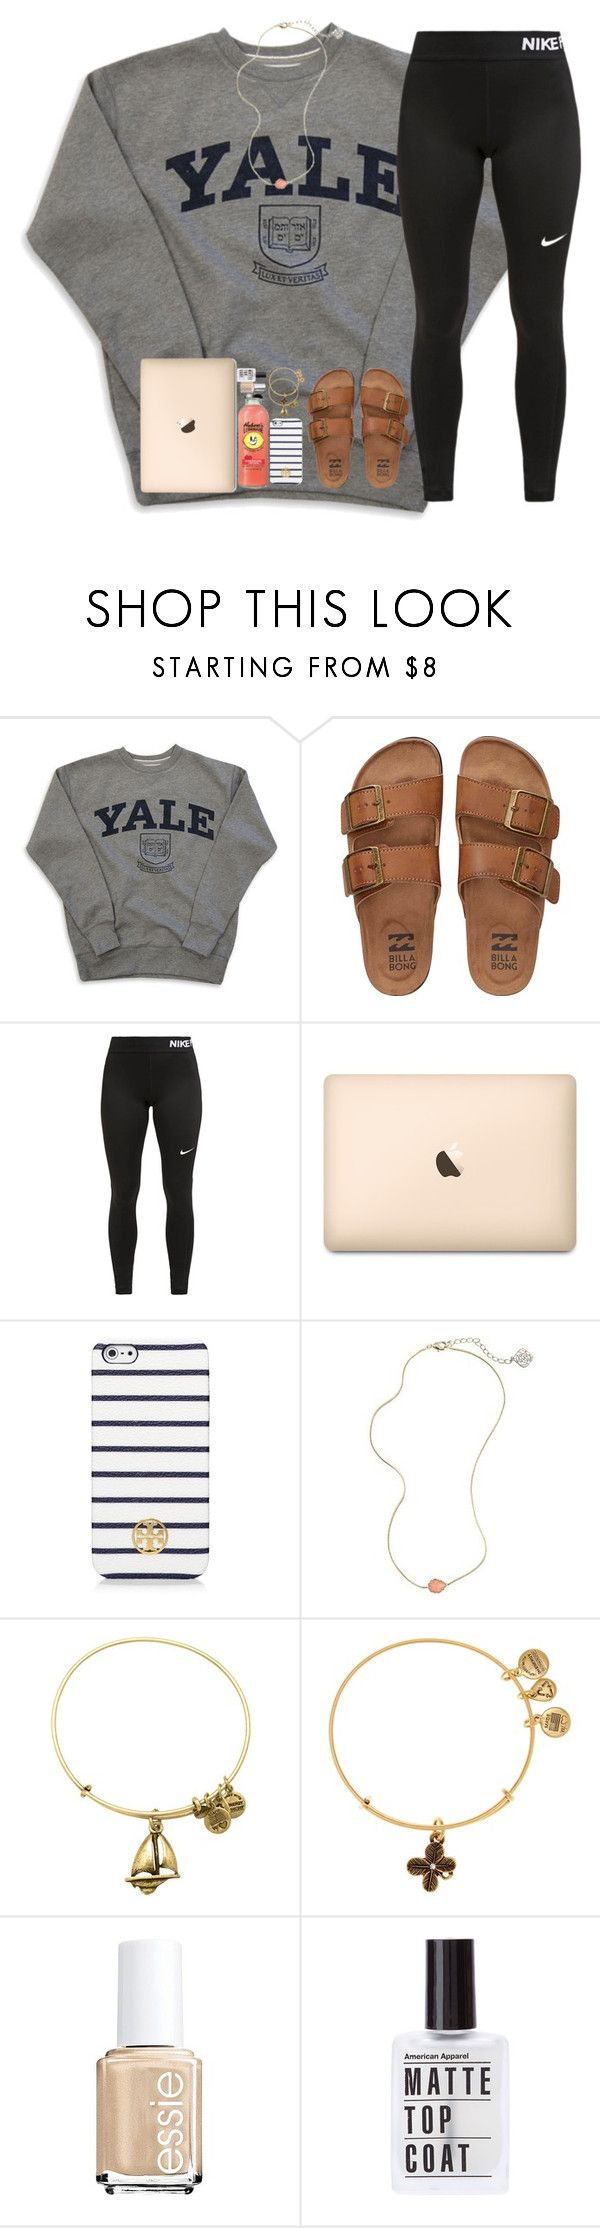 """""""What was the last song u listened to"""" by abigailcdunn ❤ liked on Polyvore featuring Billabong, NIKE, Tory Burch, Kendra Scott, Alex and Ani and Essie"""